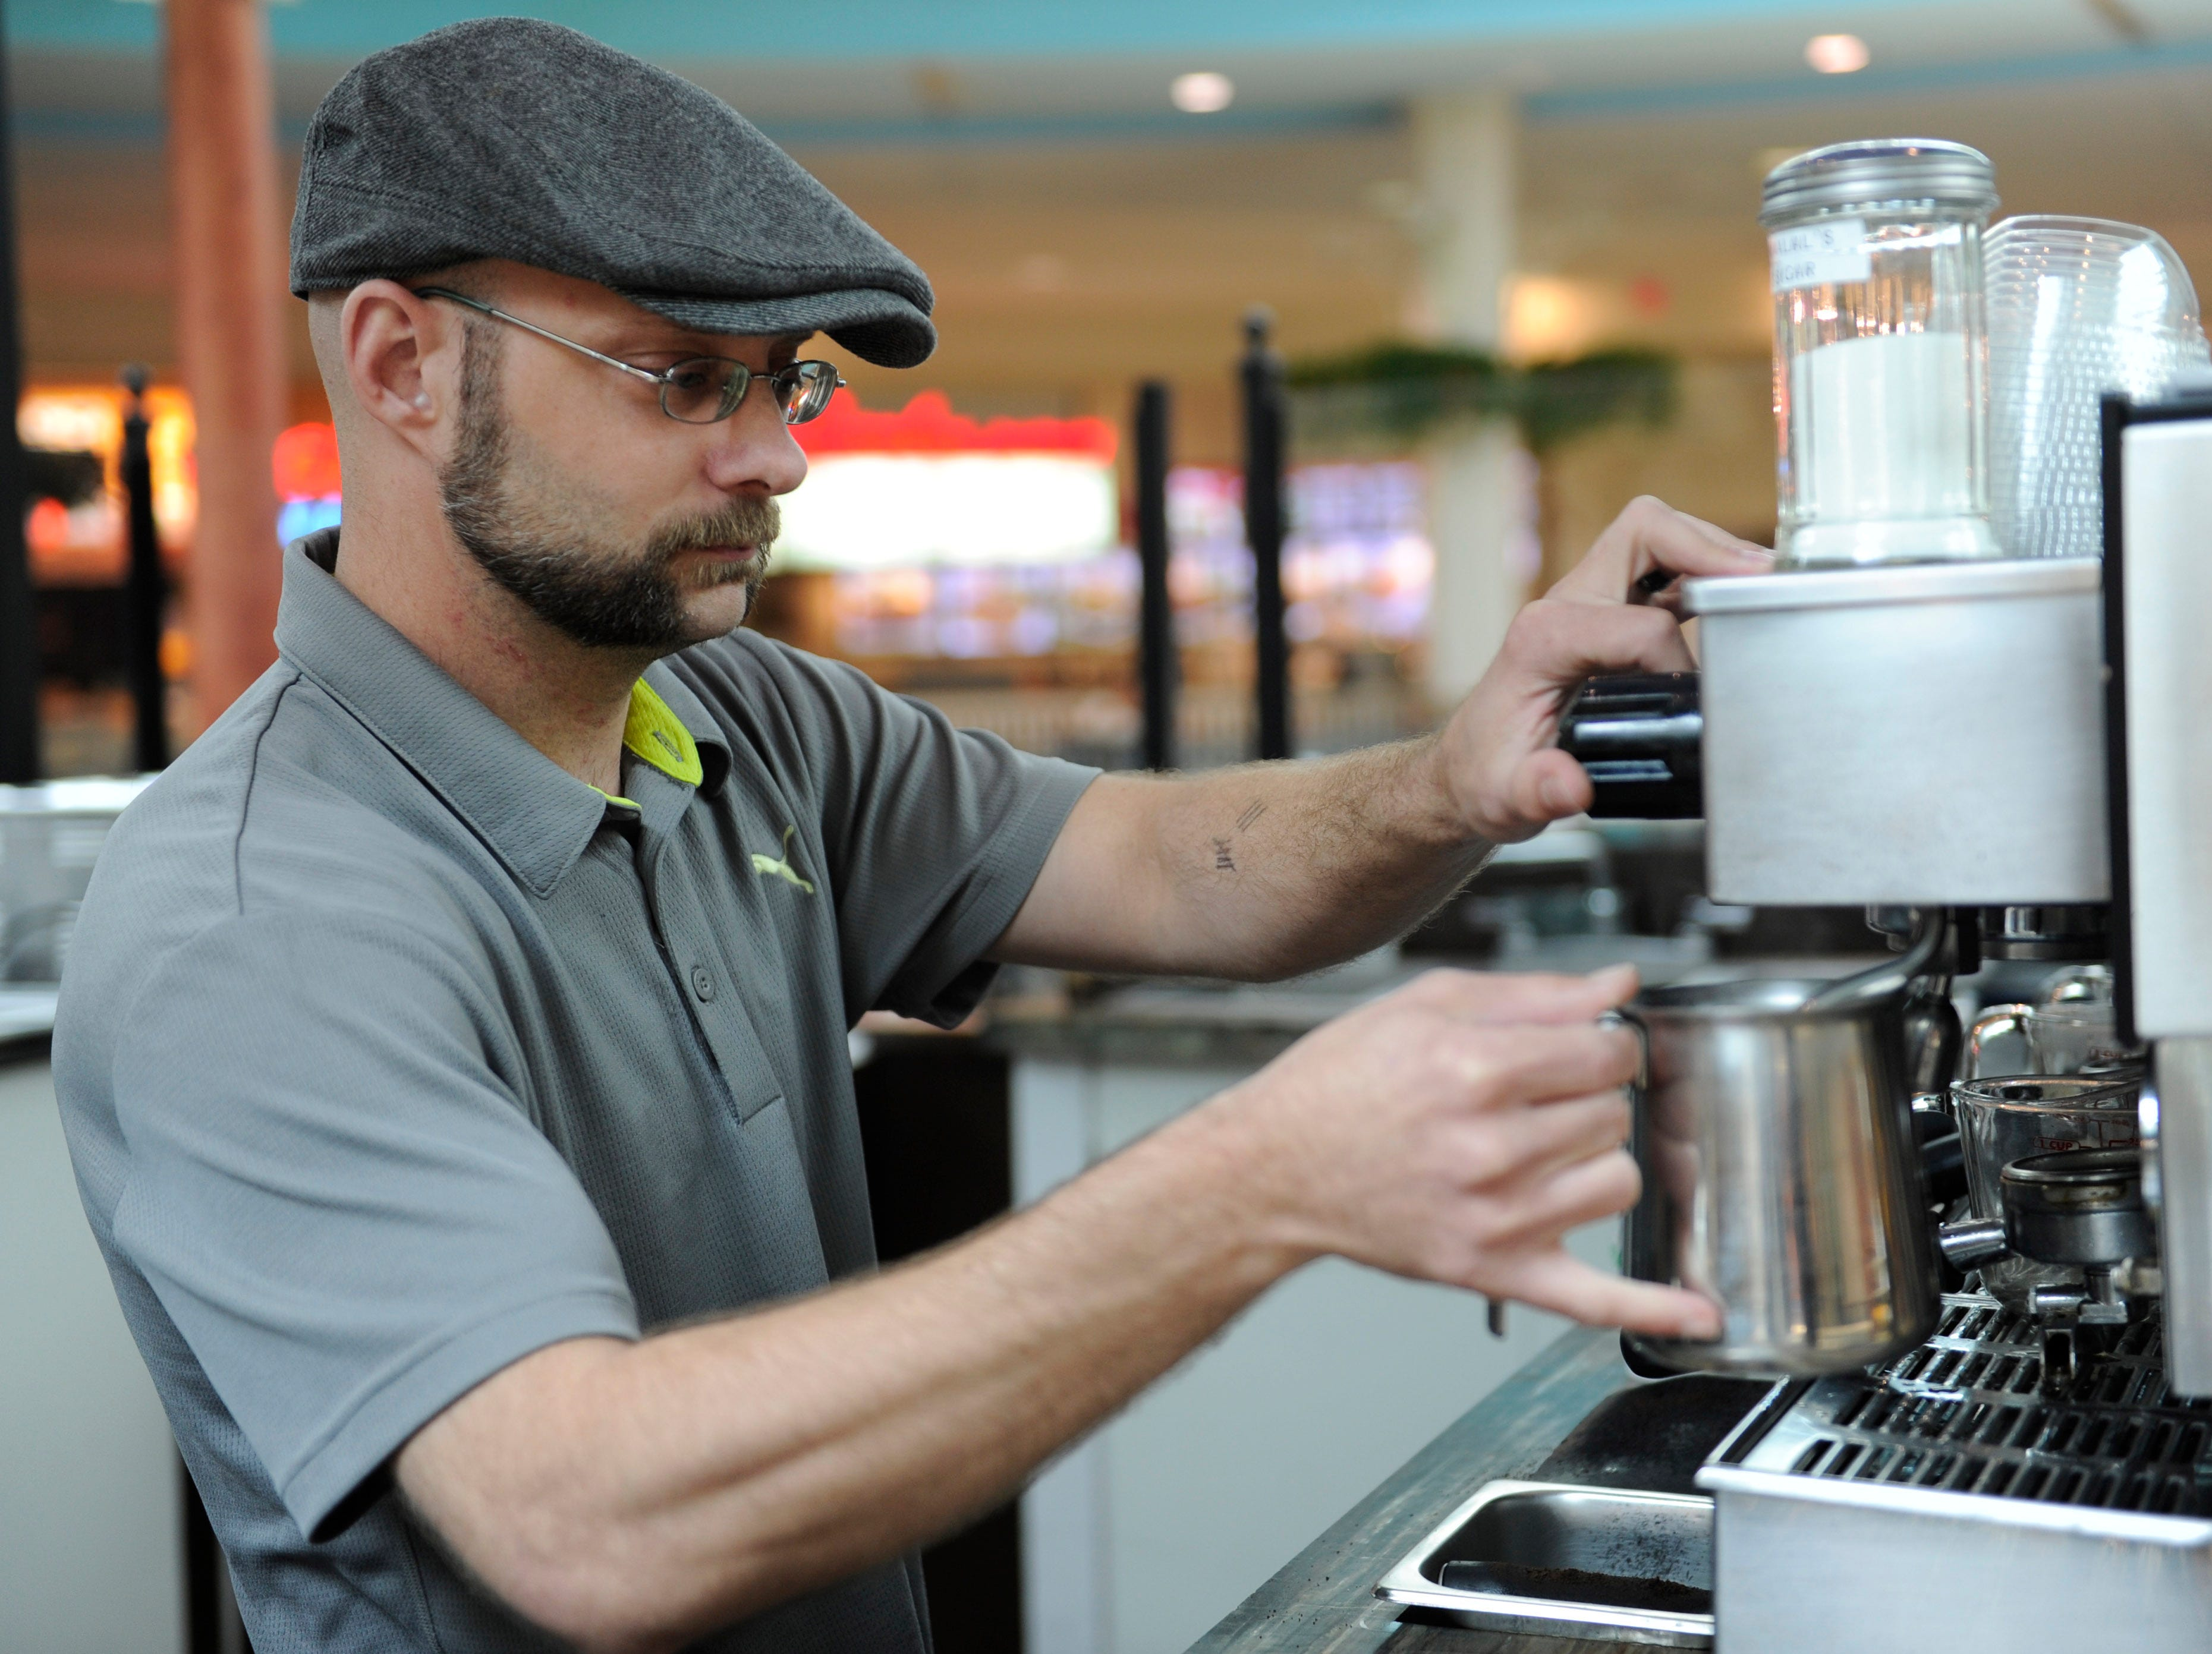 Jeremy Kendall with Javerde Coffee Company prepares a beverage in the West Town Mall food court on Tuesday, April 23, 2013. The locally owned Javerde is planning to close on Saturday, April 27. Starbucks Coffee is scheduled to open May 3rd near the food court.